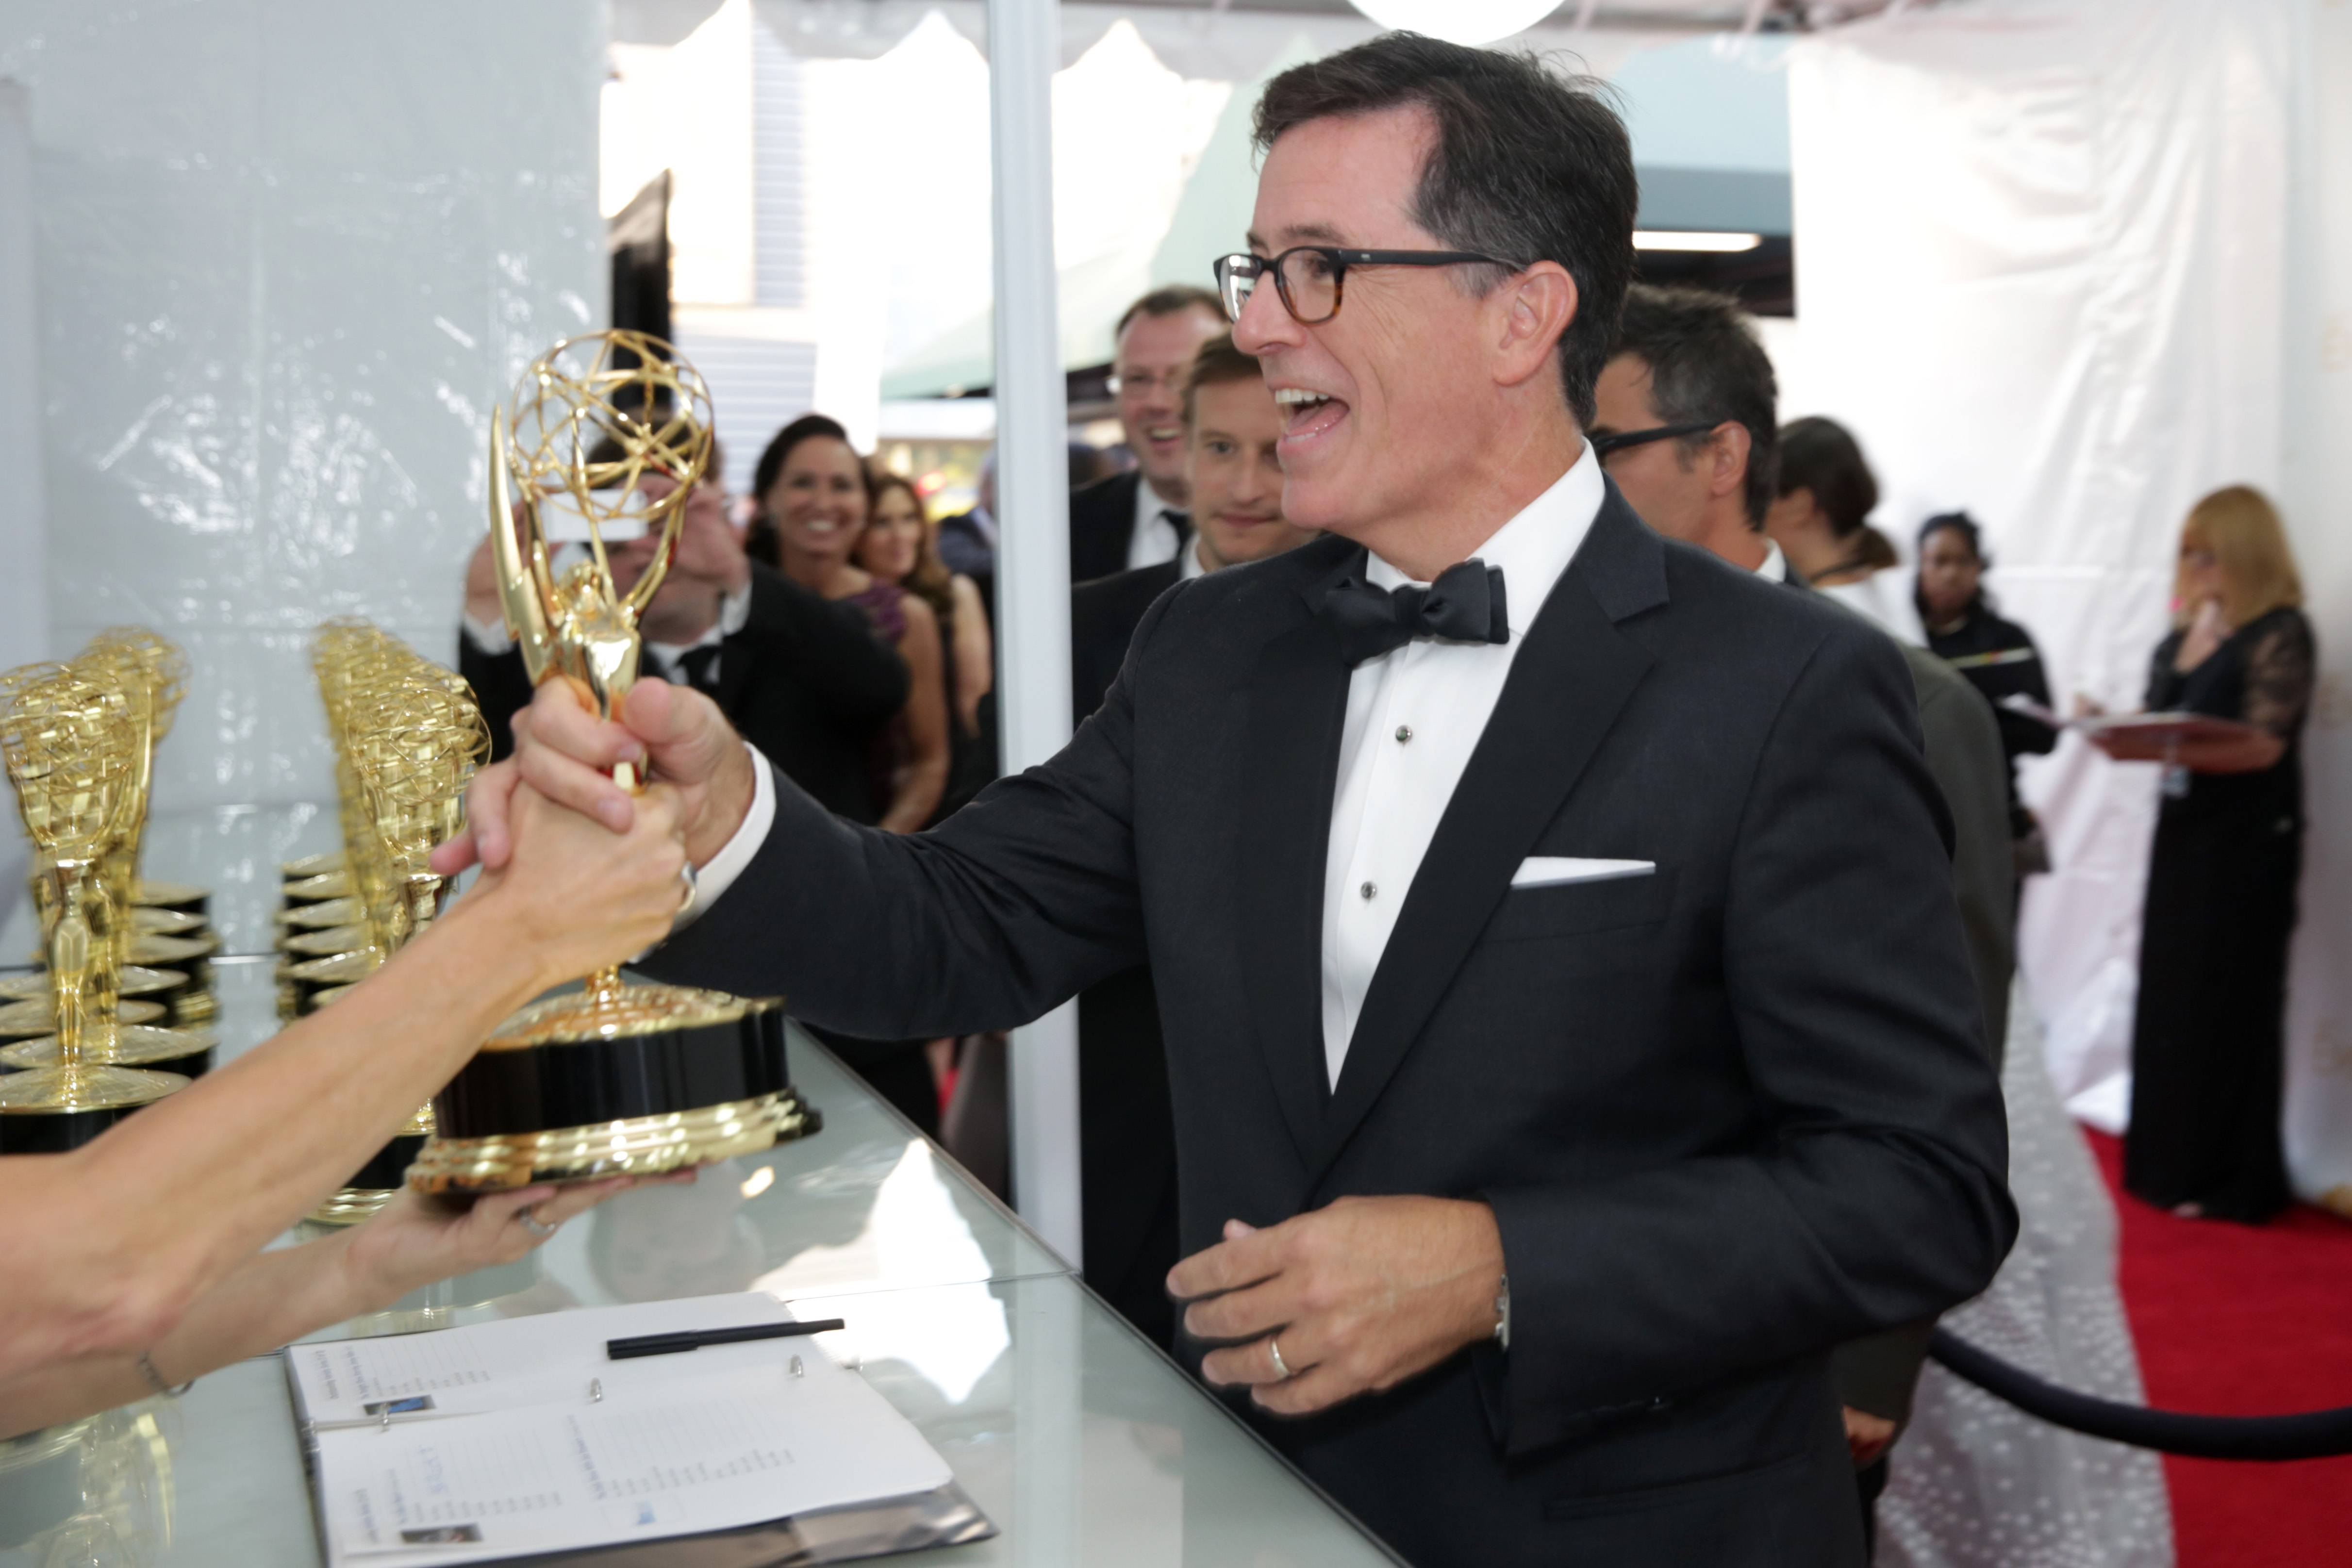 Stephen Colbert poses with the award for Outstanding Variety Series.